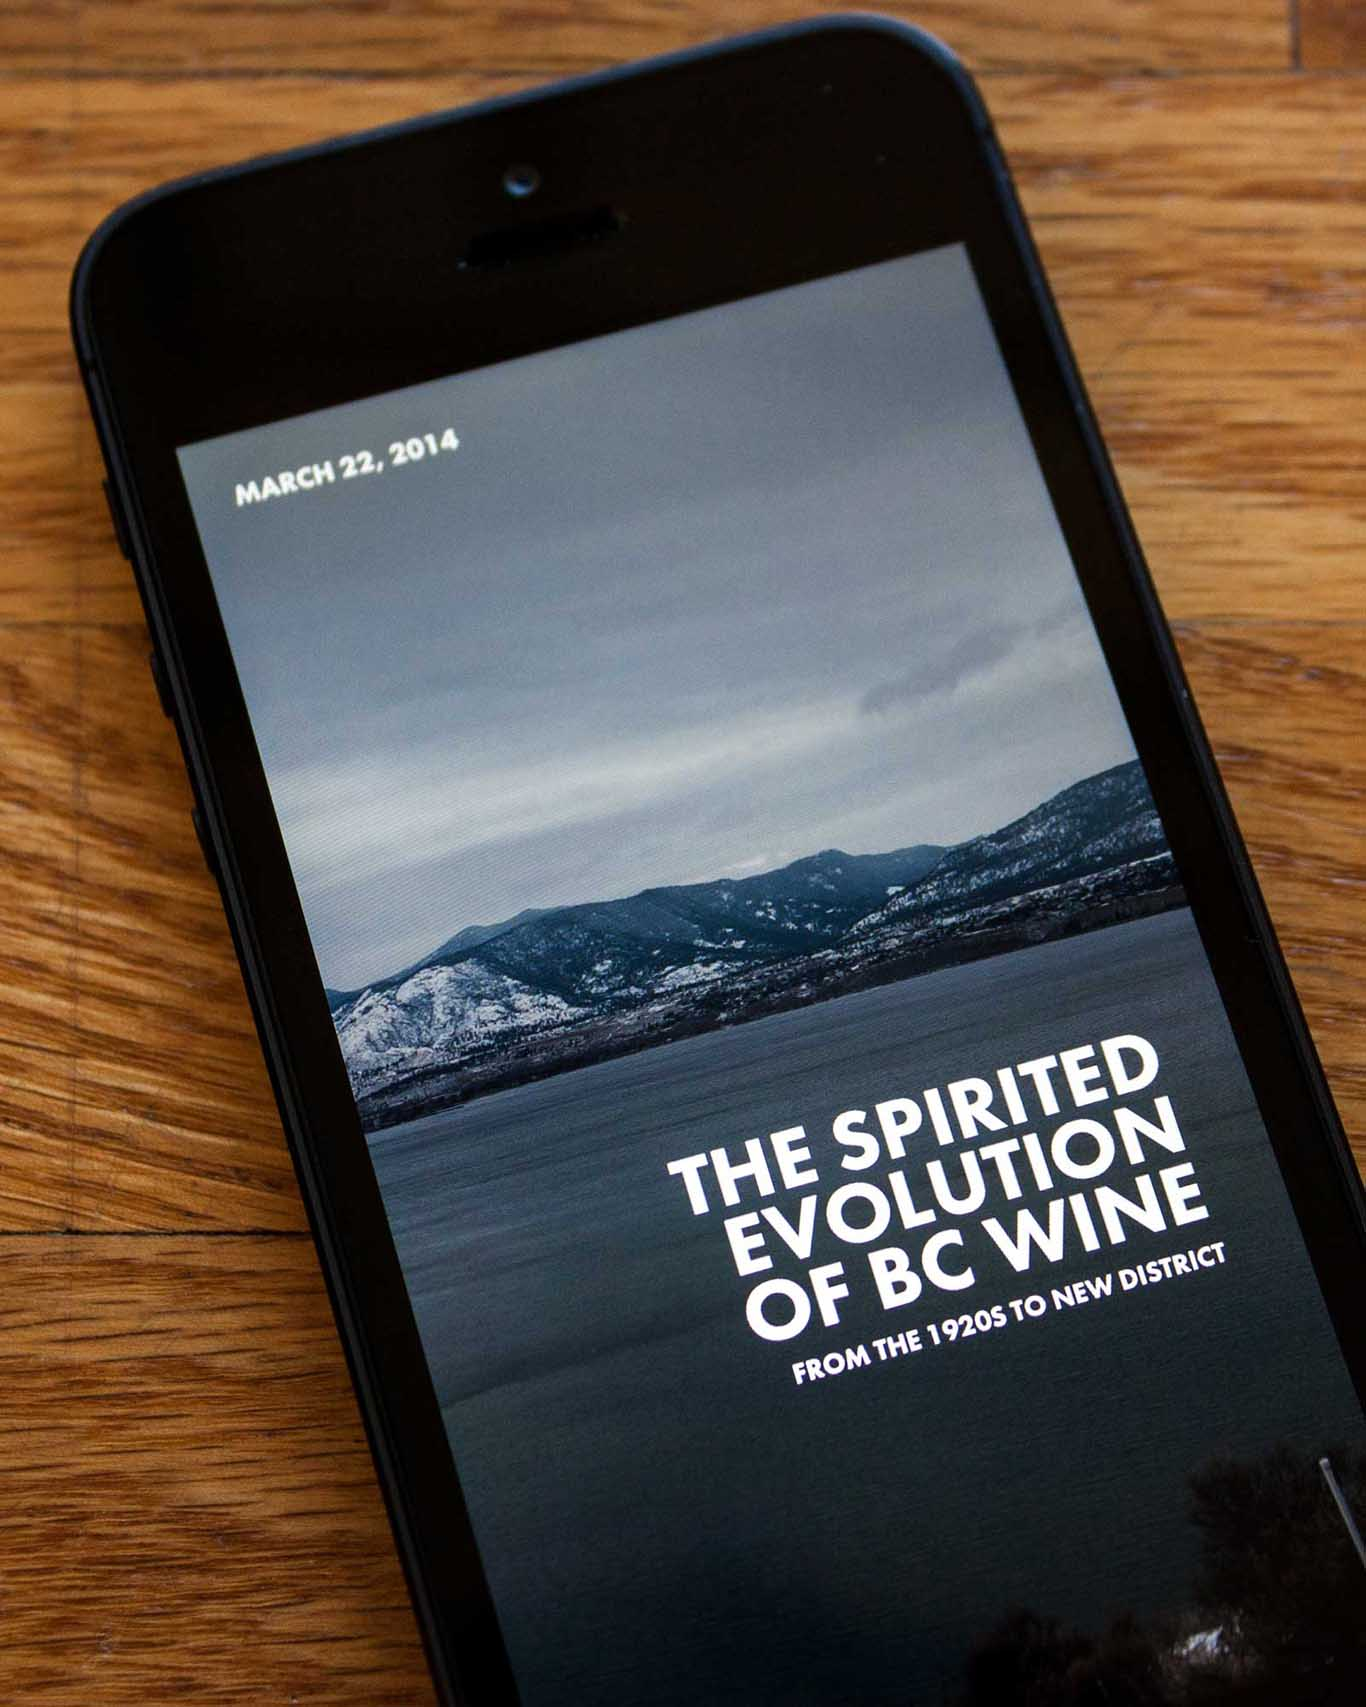 The spirited evolution of BC wine article with a large full screen image of BC interior — by Dima Yagnyuk.